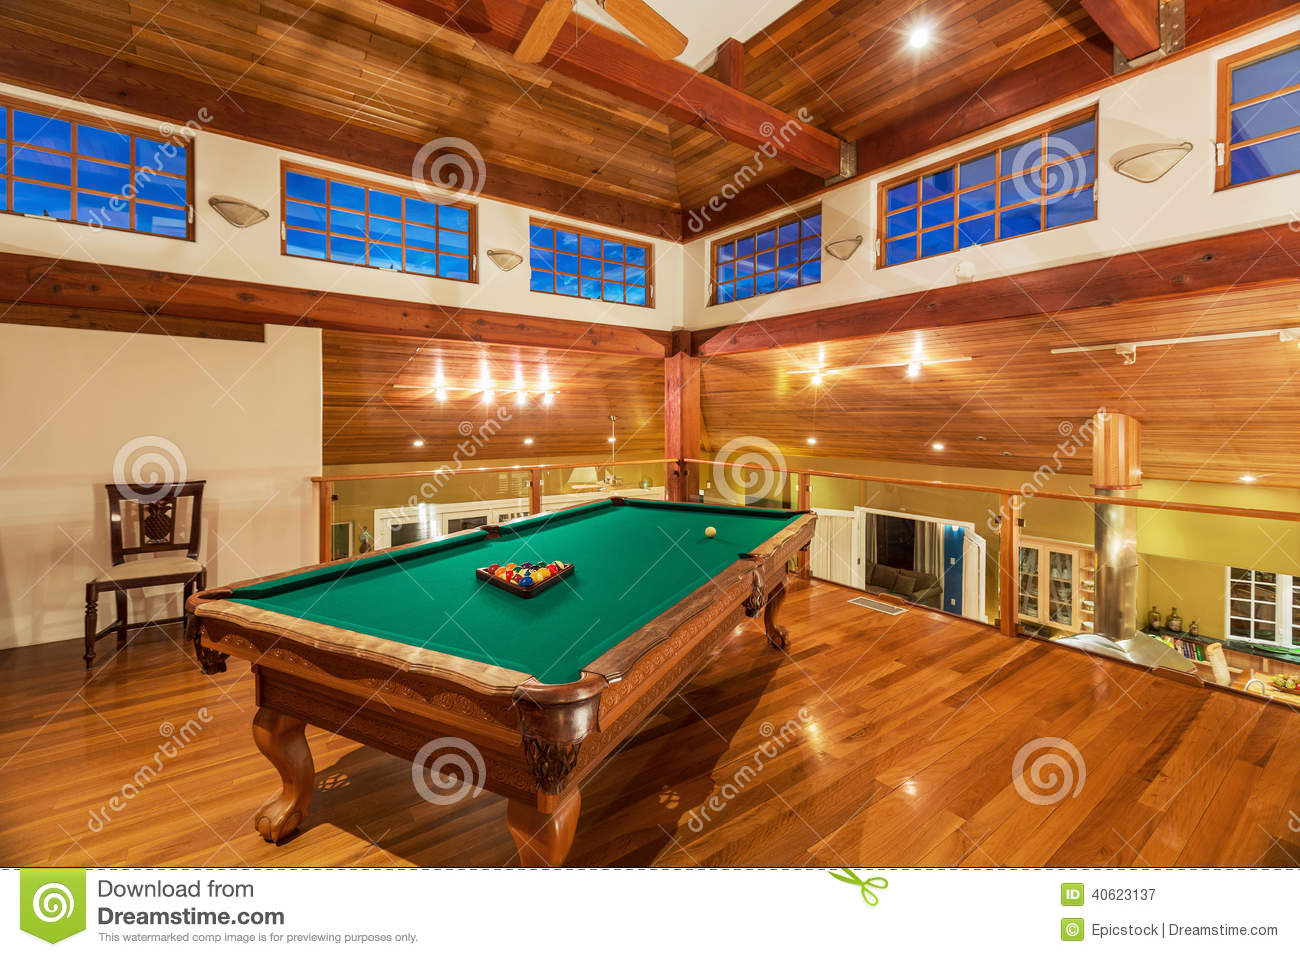 Pool table in luxury home stock photo image 40623137 - Pool table house ...